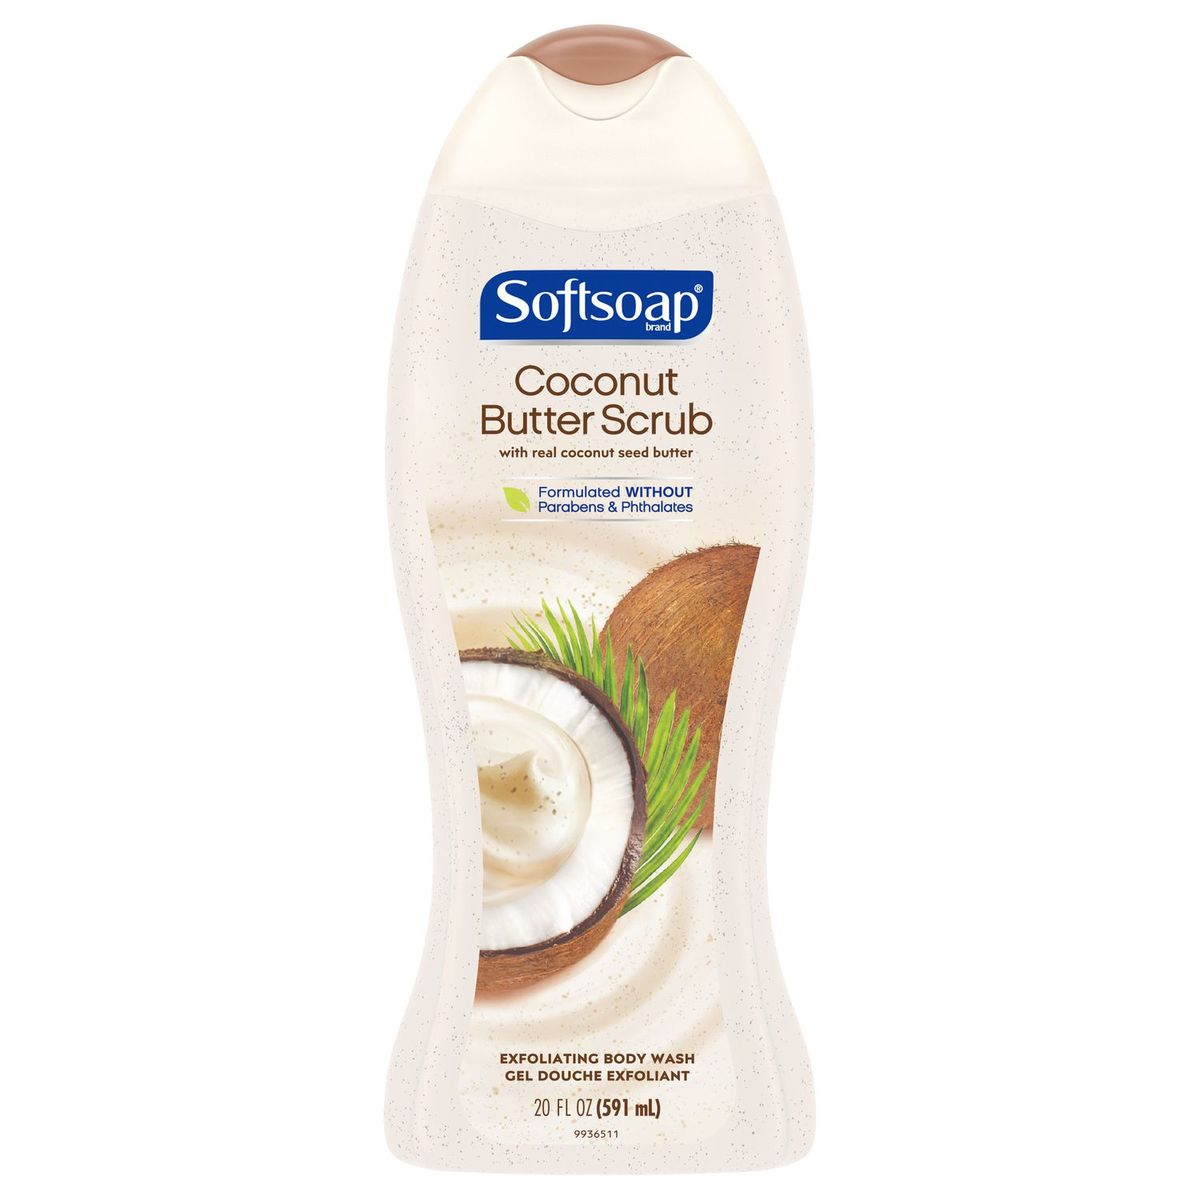 Softsoap Coconut Butter Scrub Bodywash 591ml